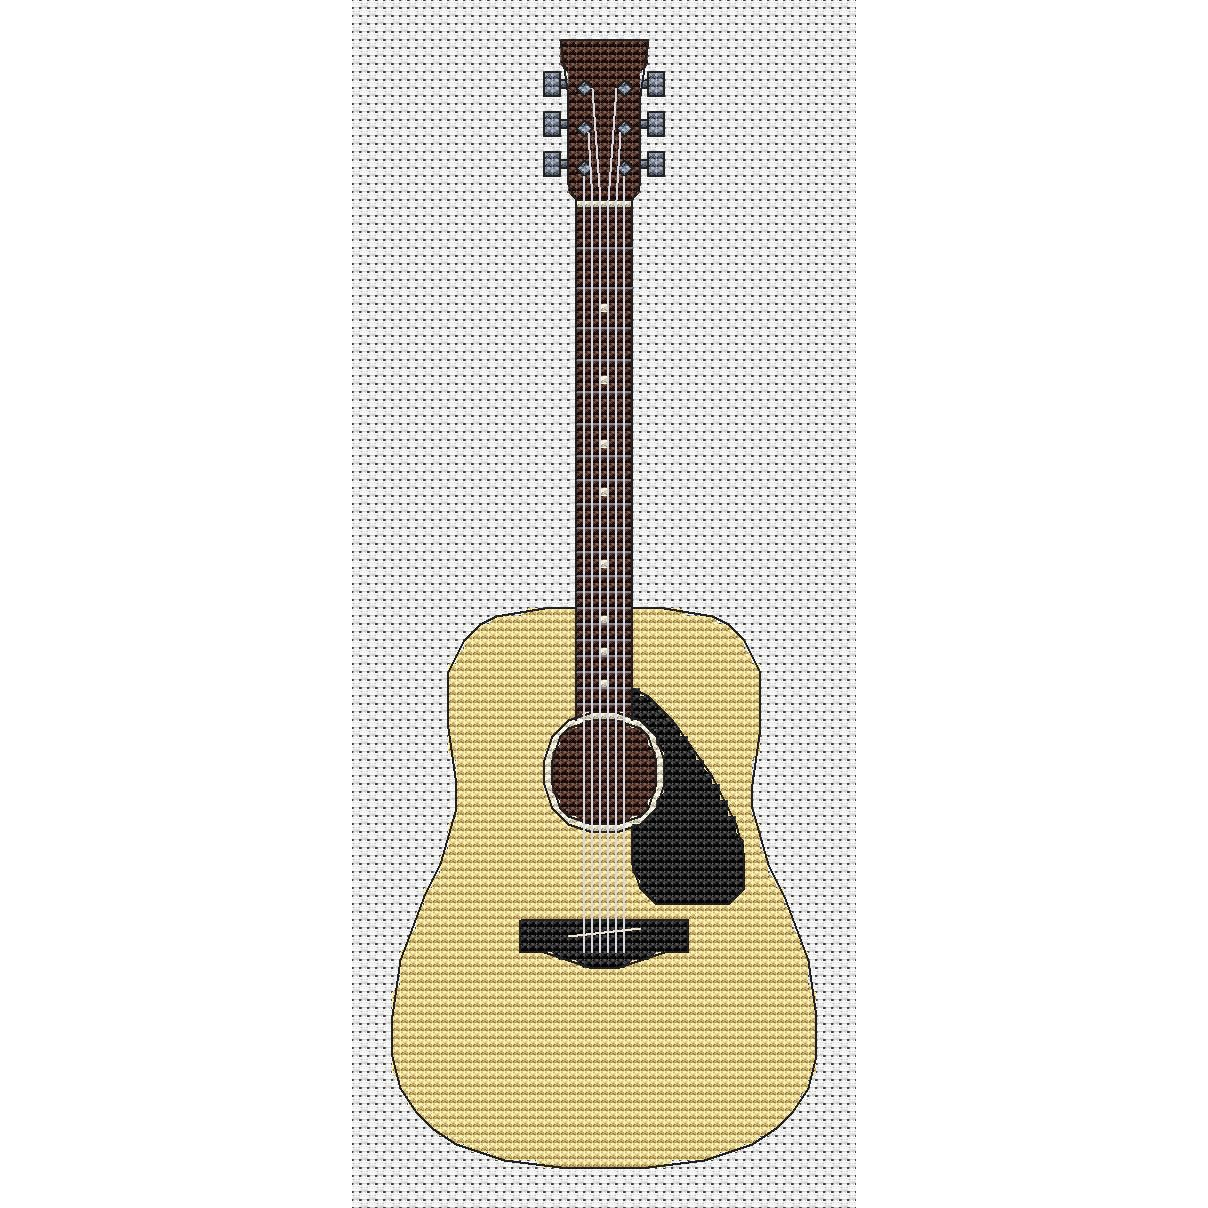 Acoustic Guitar Cross Stitch Design By Elite Designs